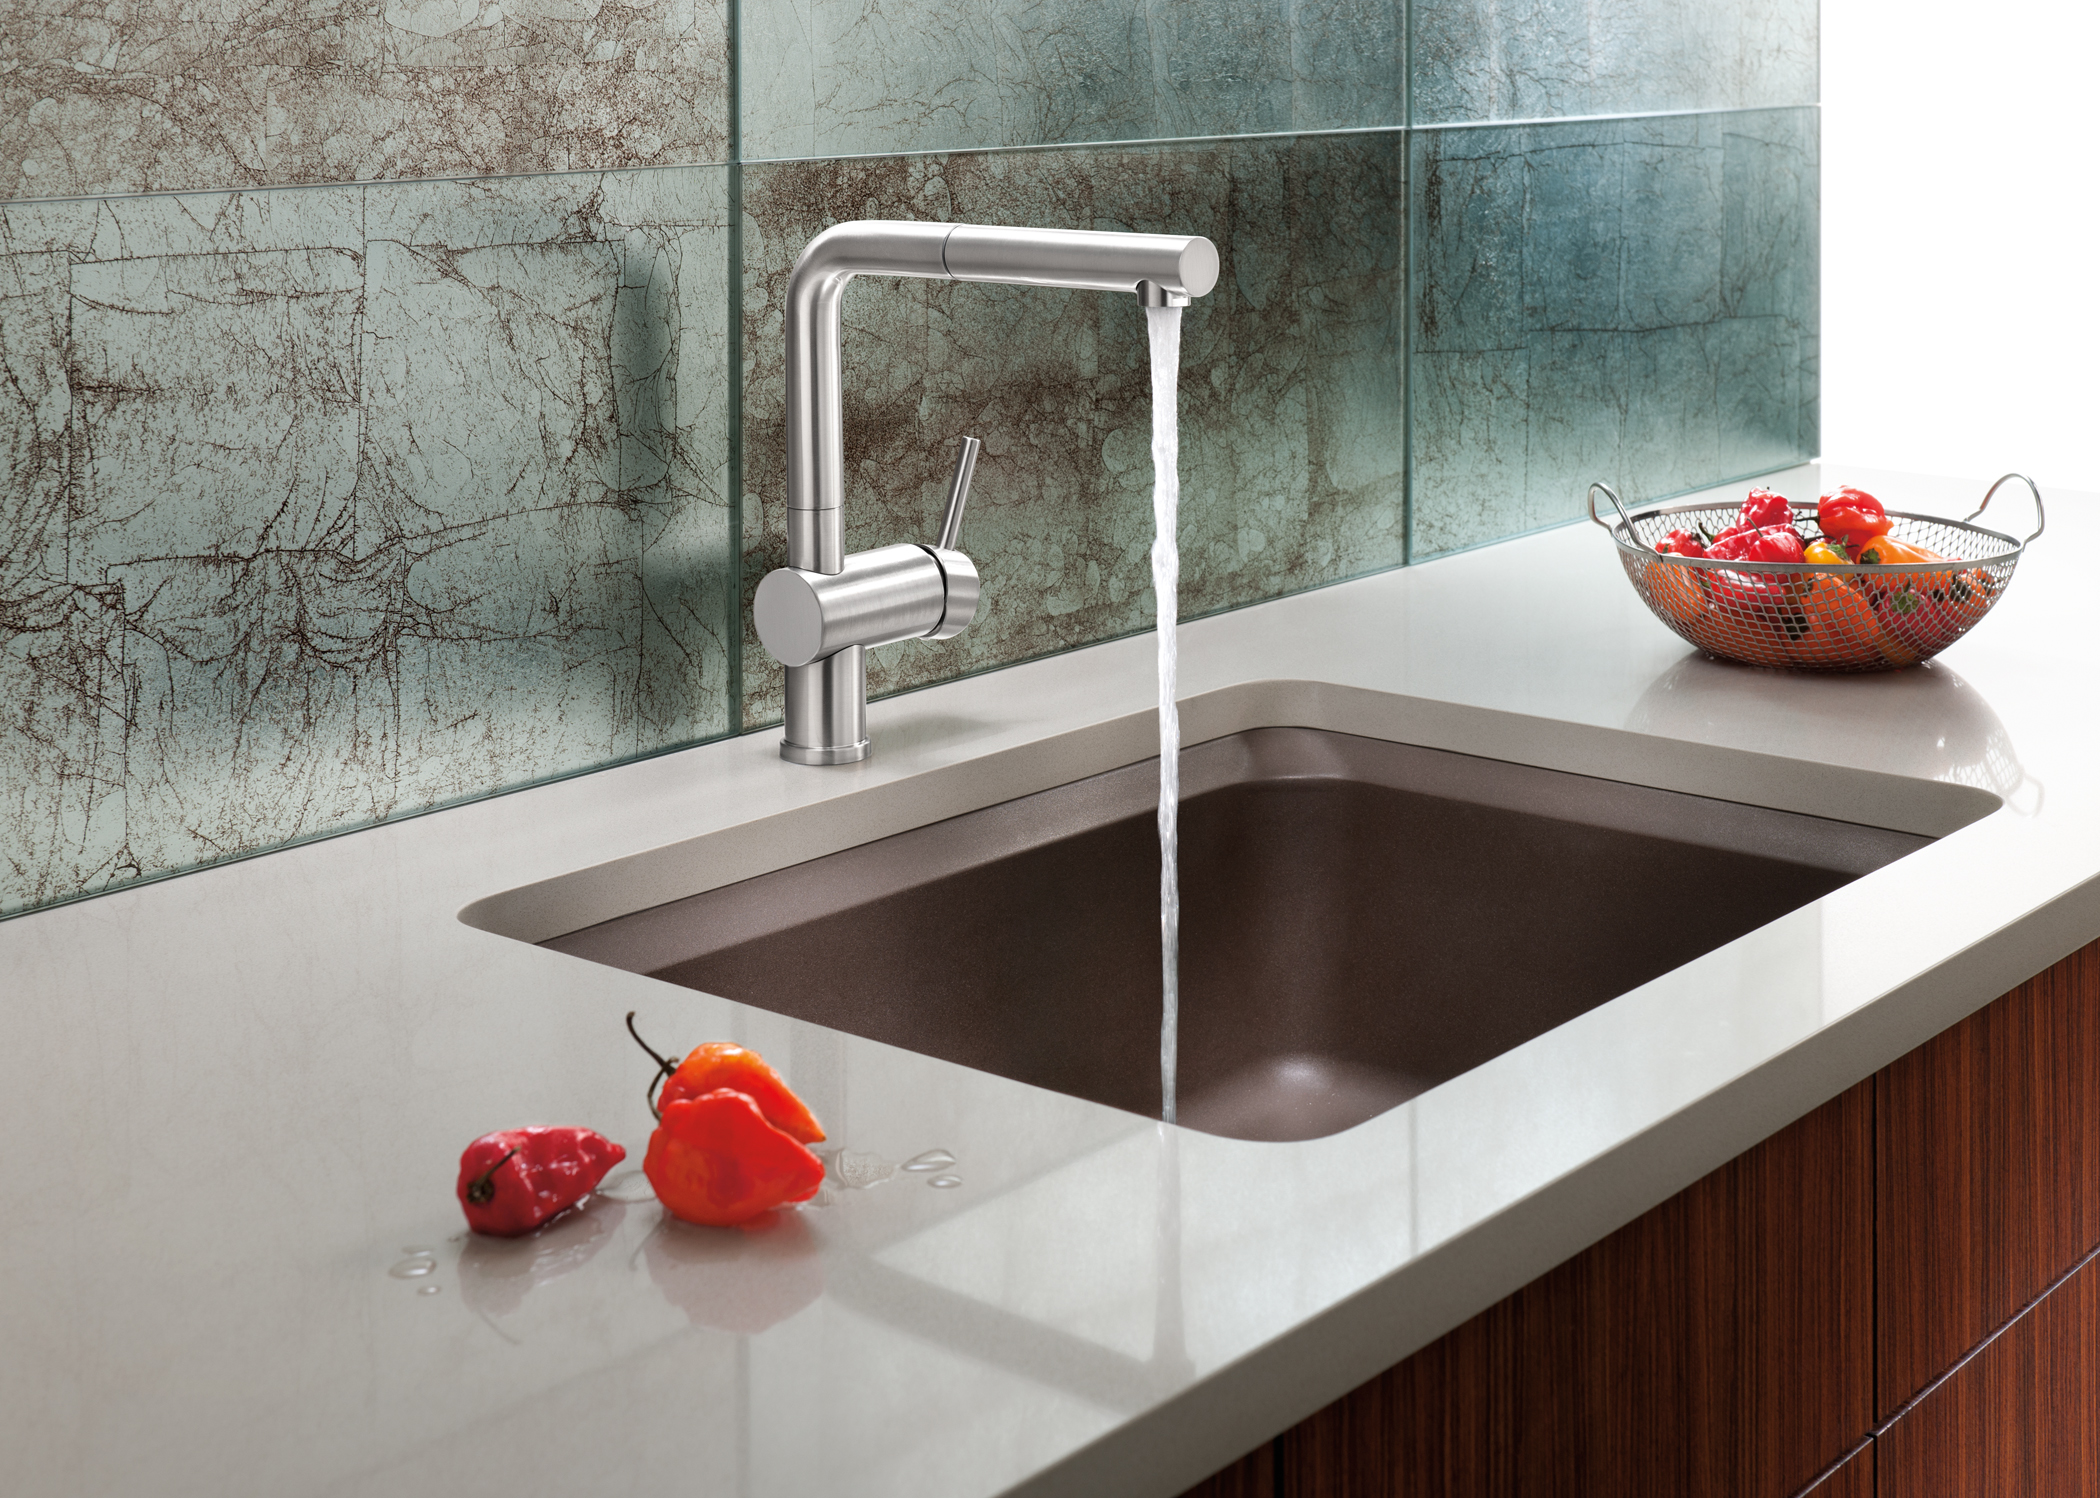 Designer Sink the new blanco silgranit® ii vision™ designer kitchen sink offers